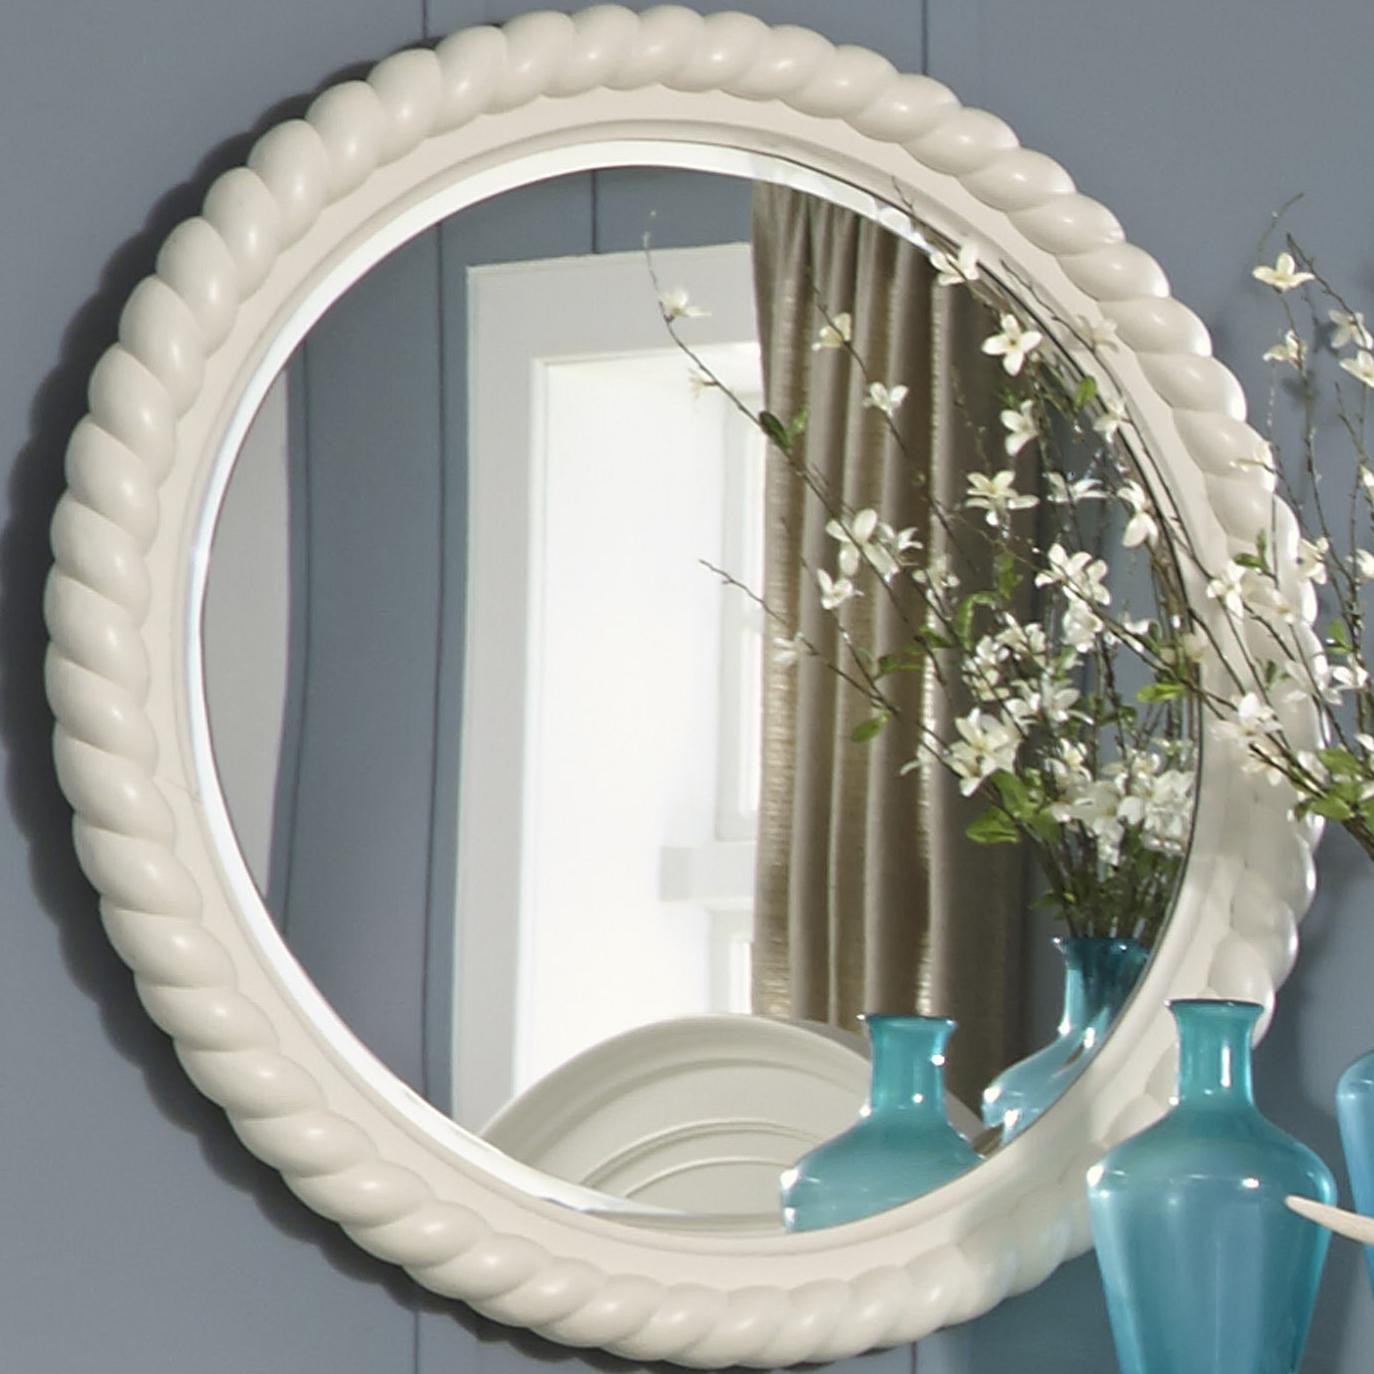 Liberty Furniture Harbor View Rope Mirror - Item Number: 631-BR52